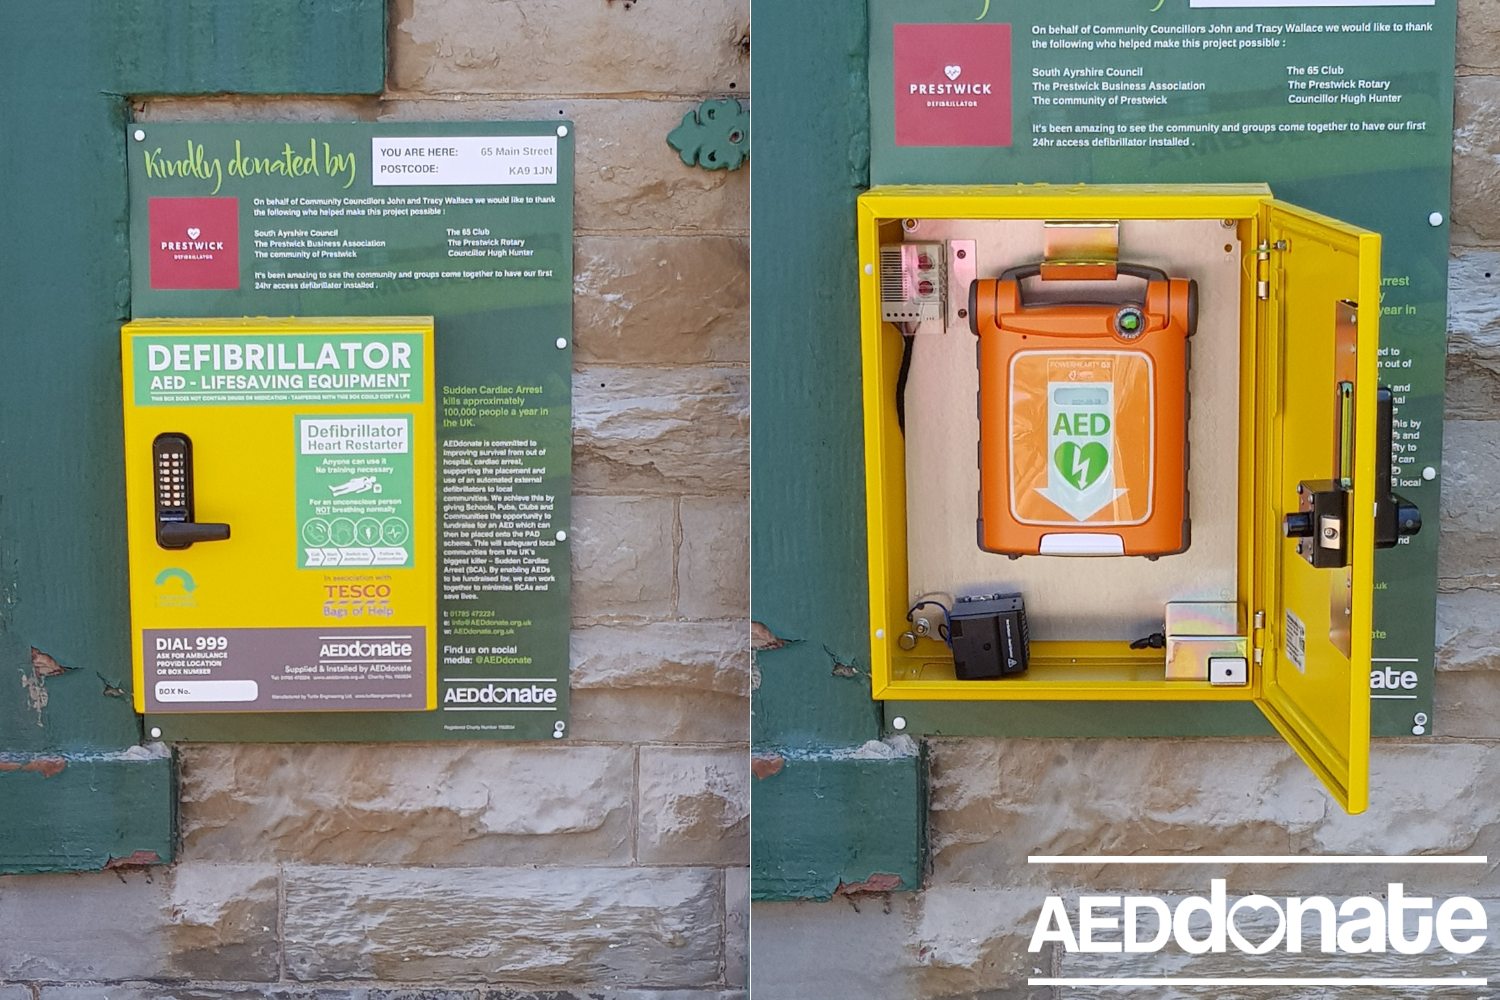 Defibrillator available 24/7 in Prestwick